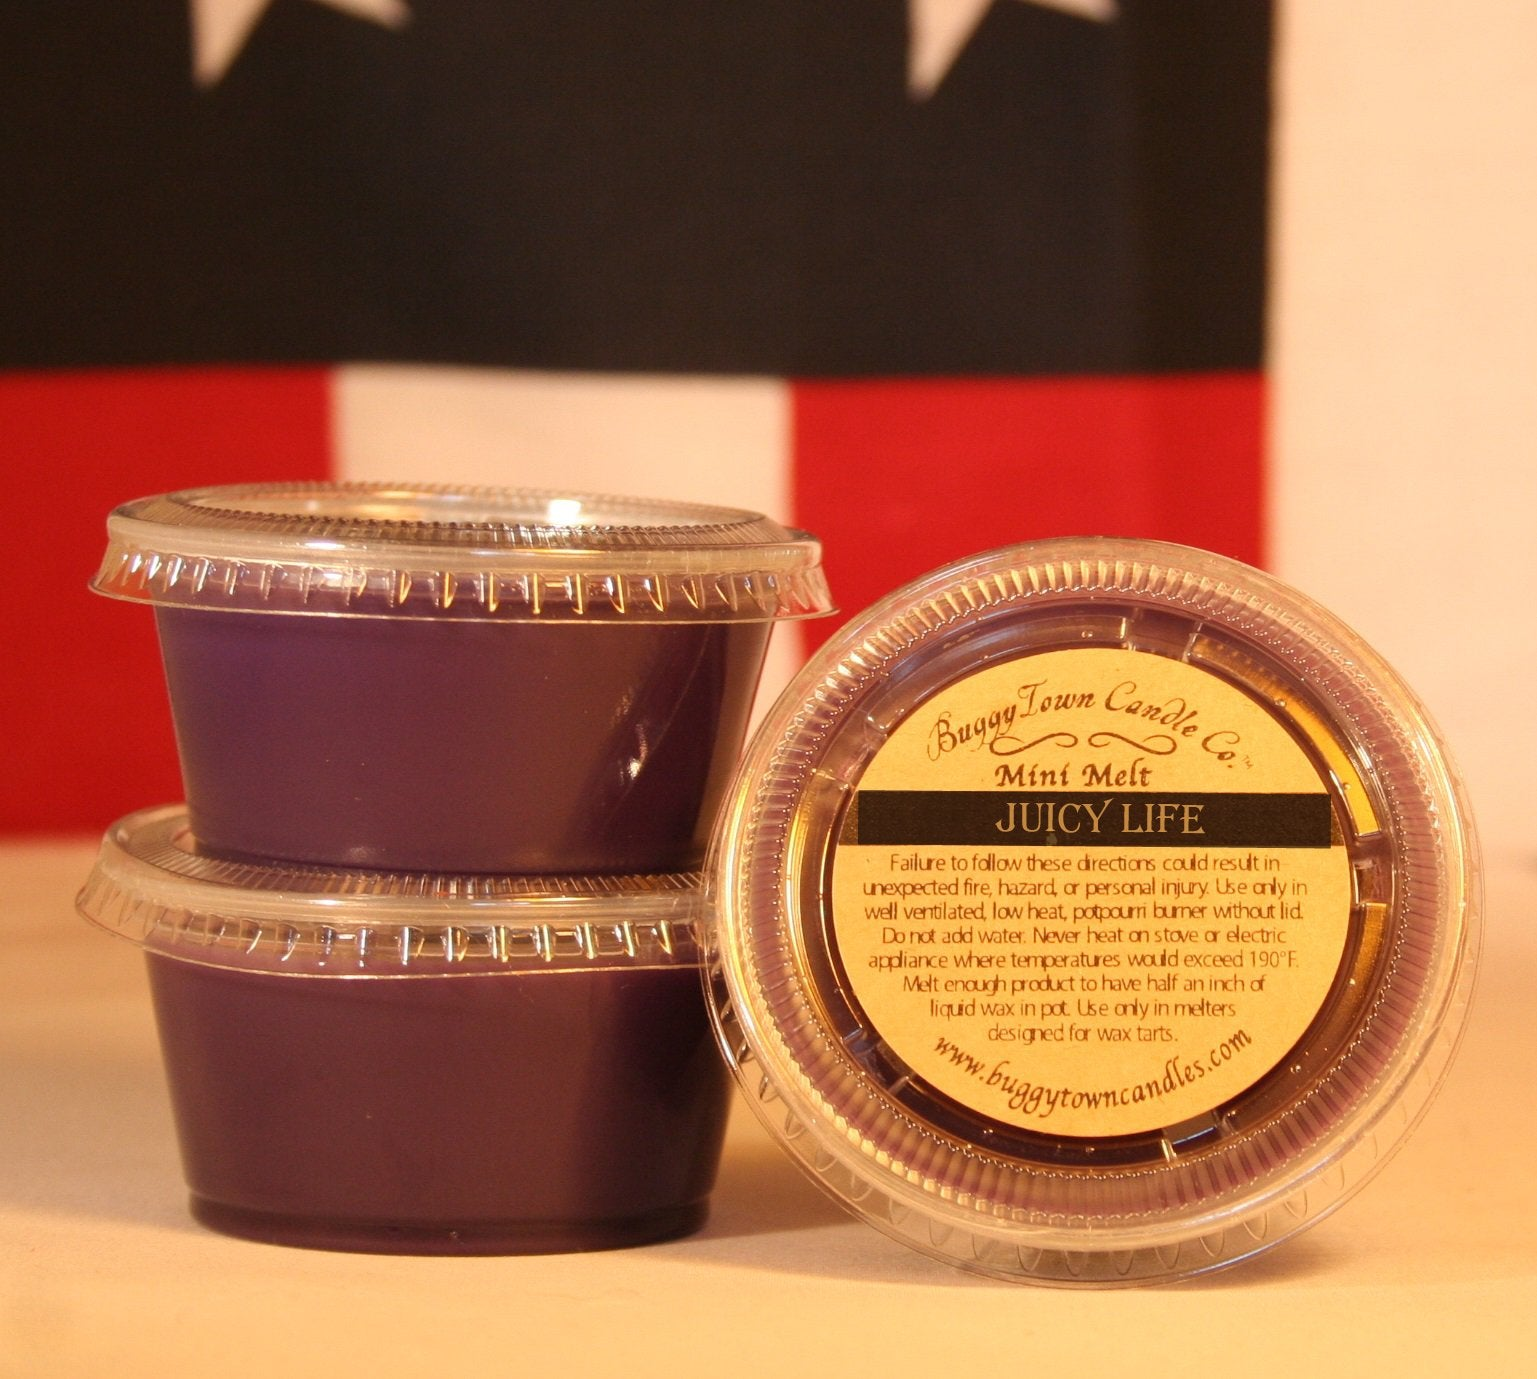 Juicy Life Candles